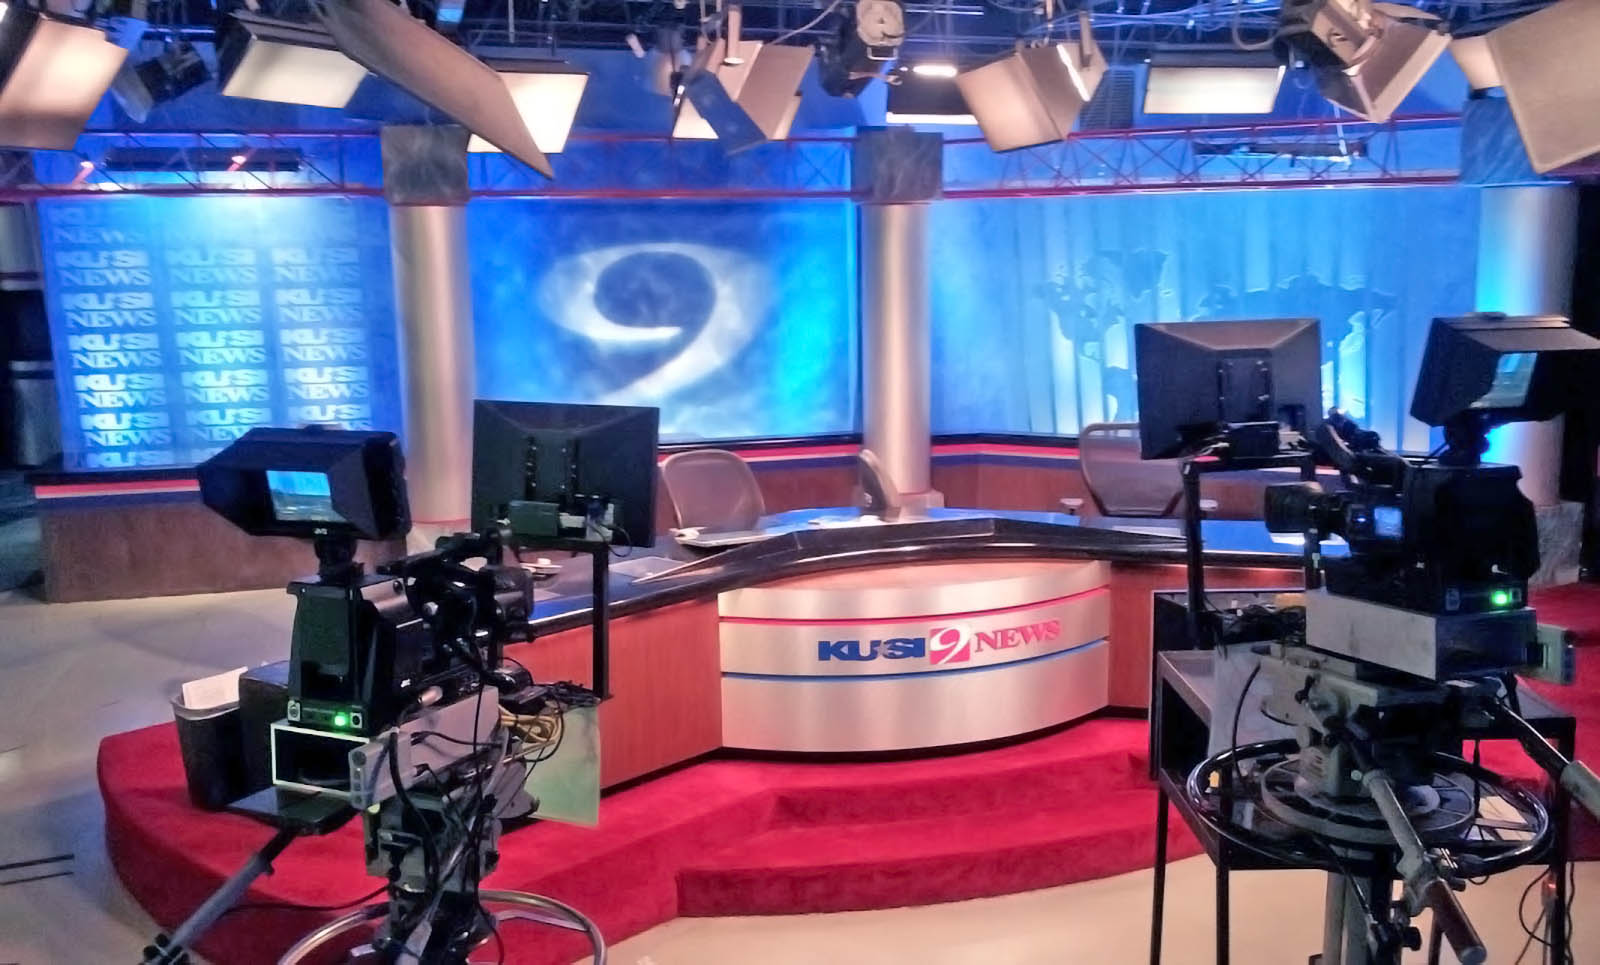 KUSI News studio